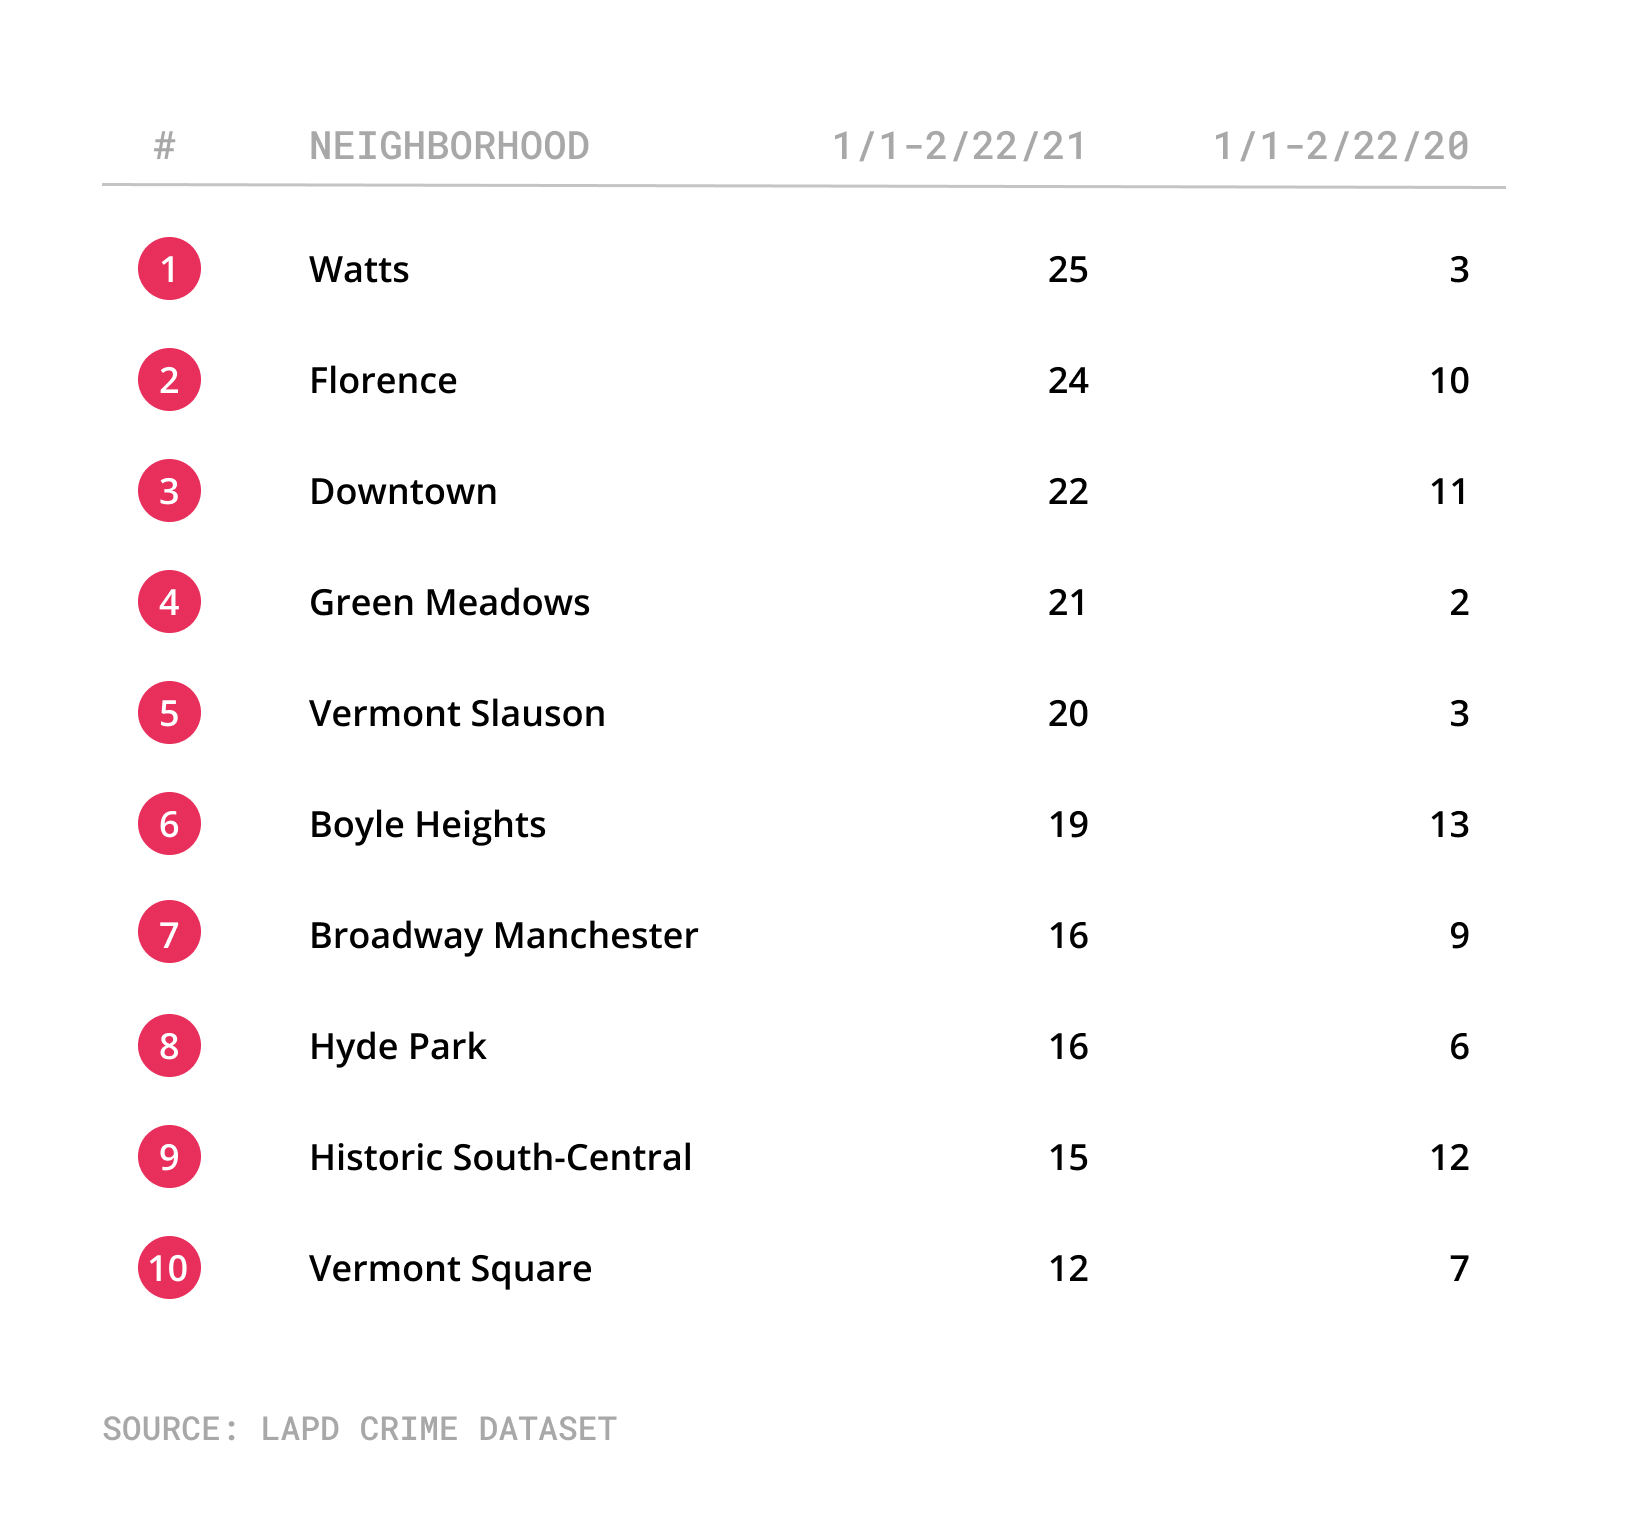 List of neighborhoods with the most shooting incidents